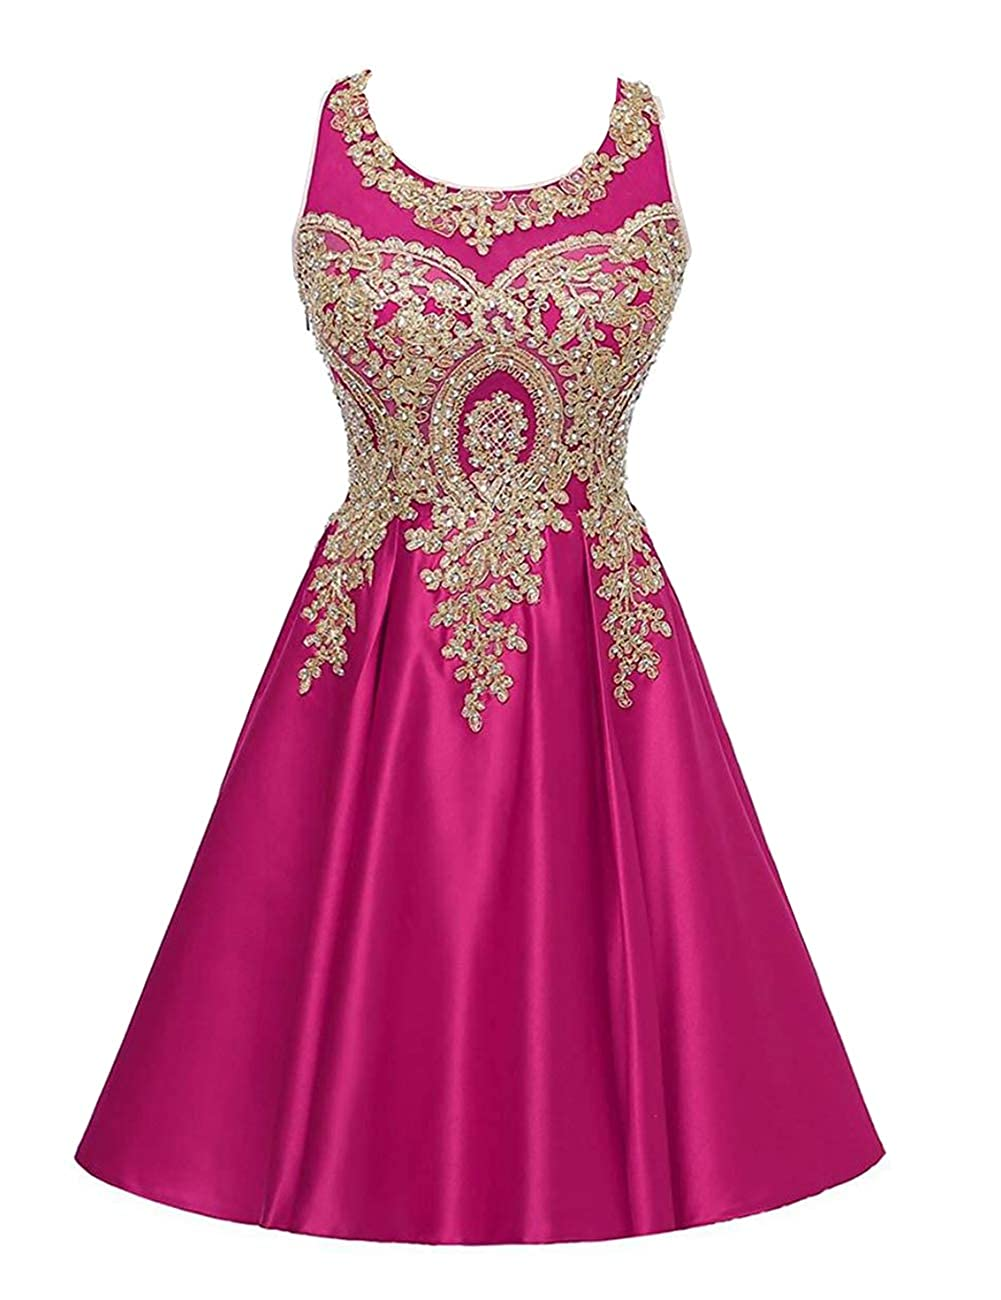 Fuchsia ModeC Junior's Lace Short Prom Party Ball Gowns Sweetheart Homecoming Dresses